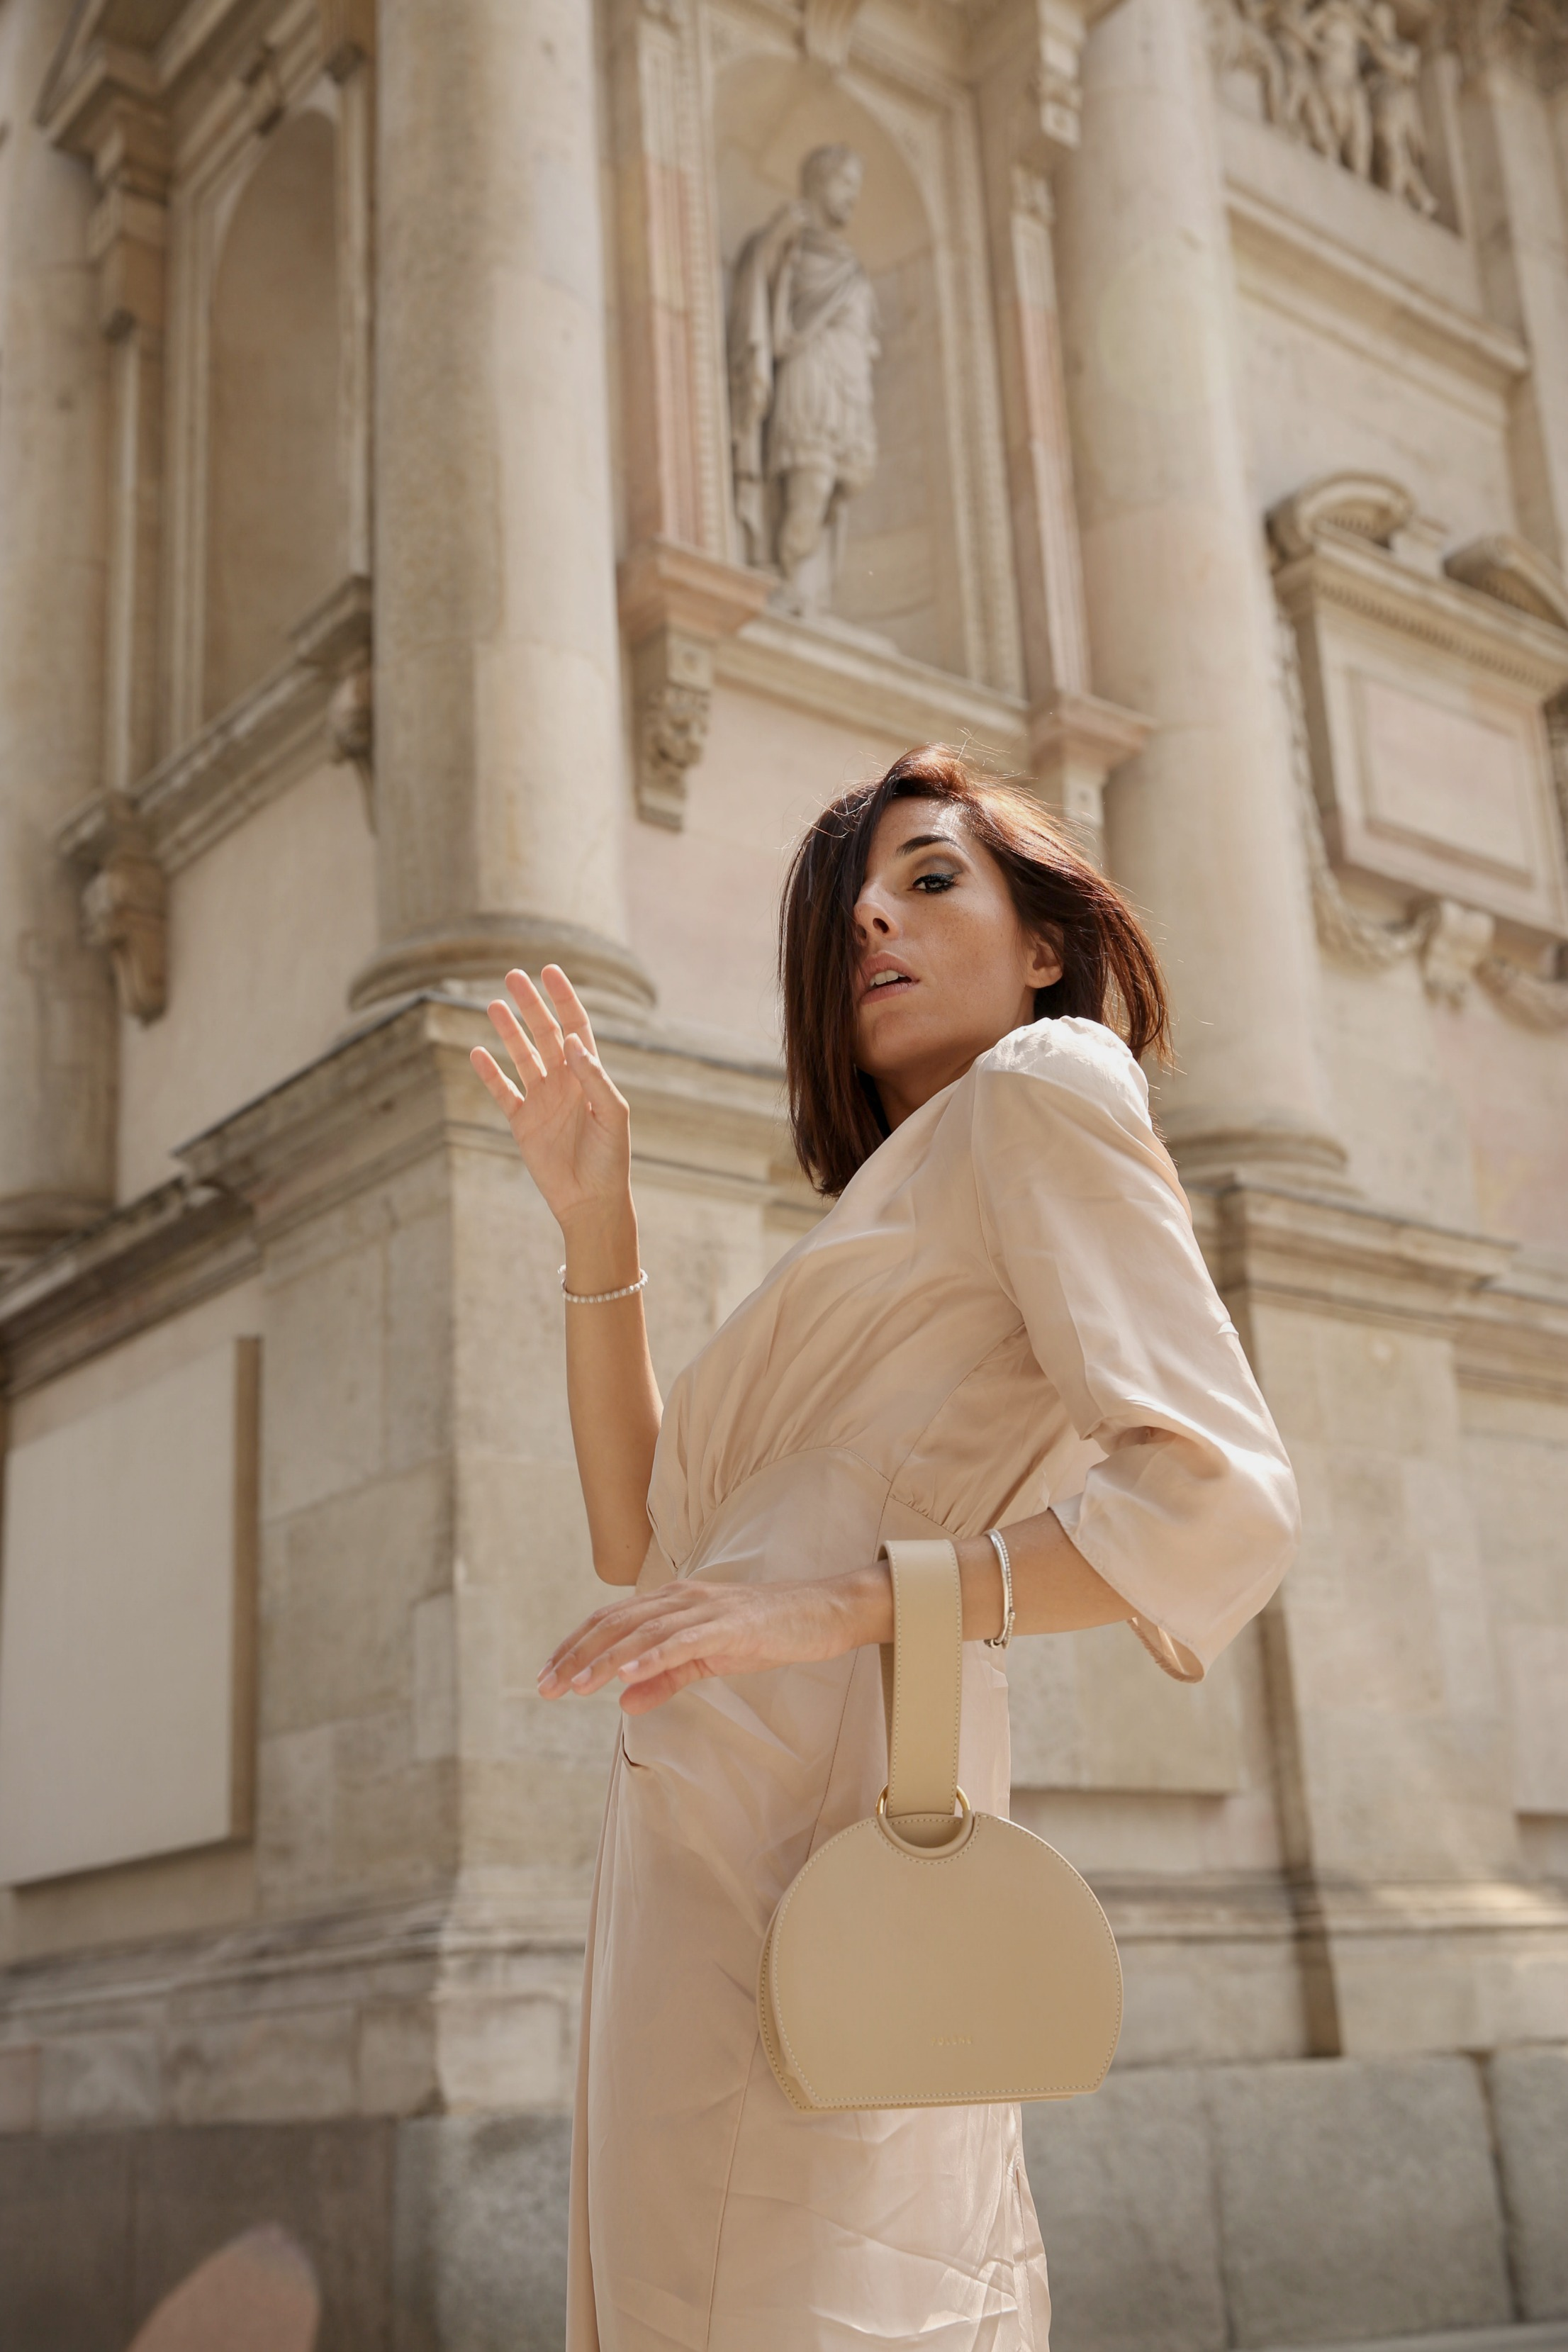 Vetements non vende, theladycracy, elisa bellino, fashion blog moda, blogger moda, loeil dress, minimal blogger, minimal style outfit, elisa bellino, polene paris bag